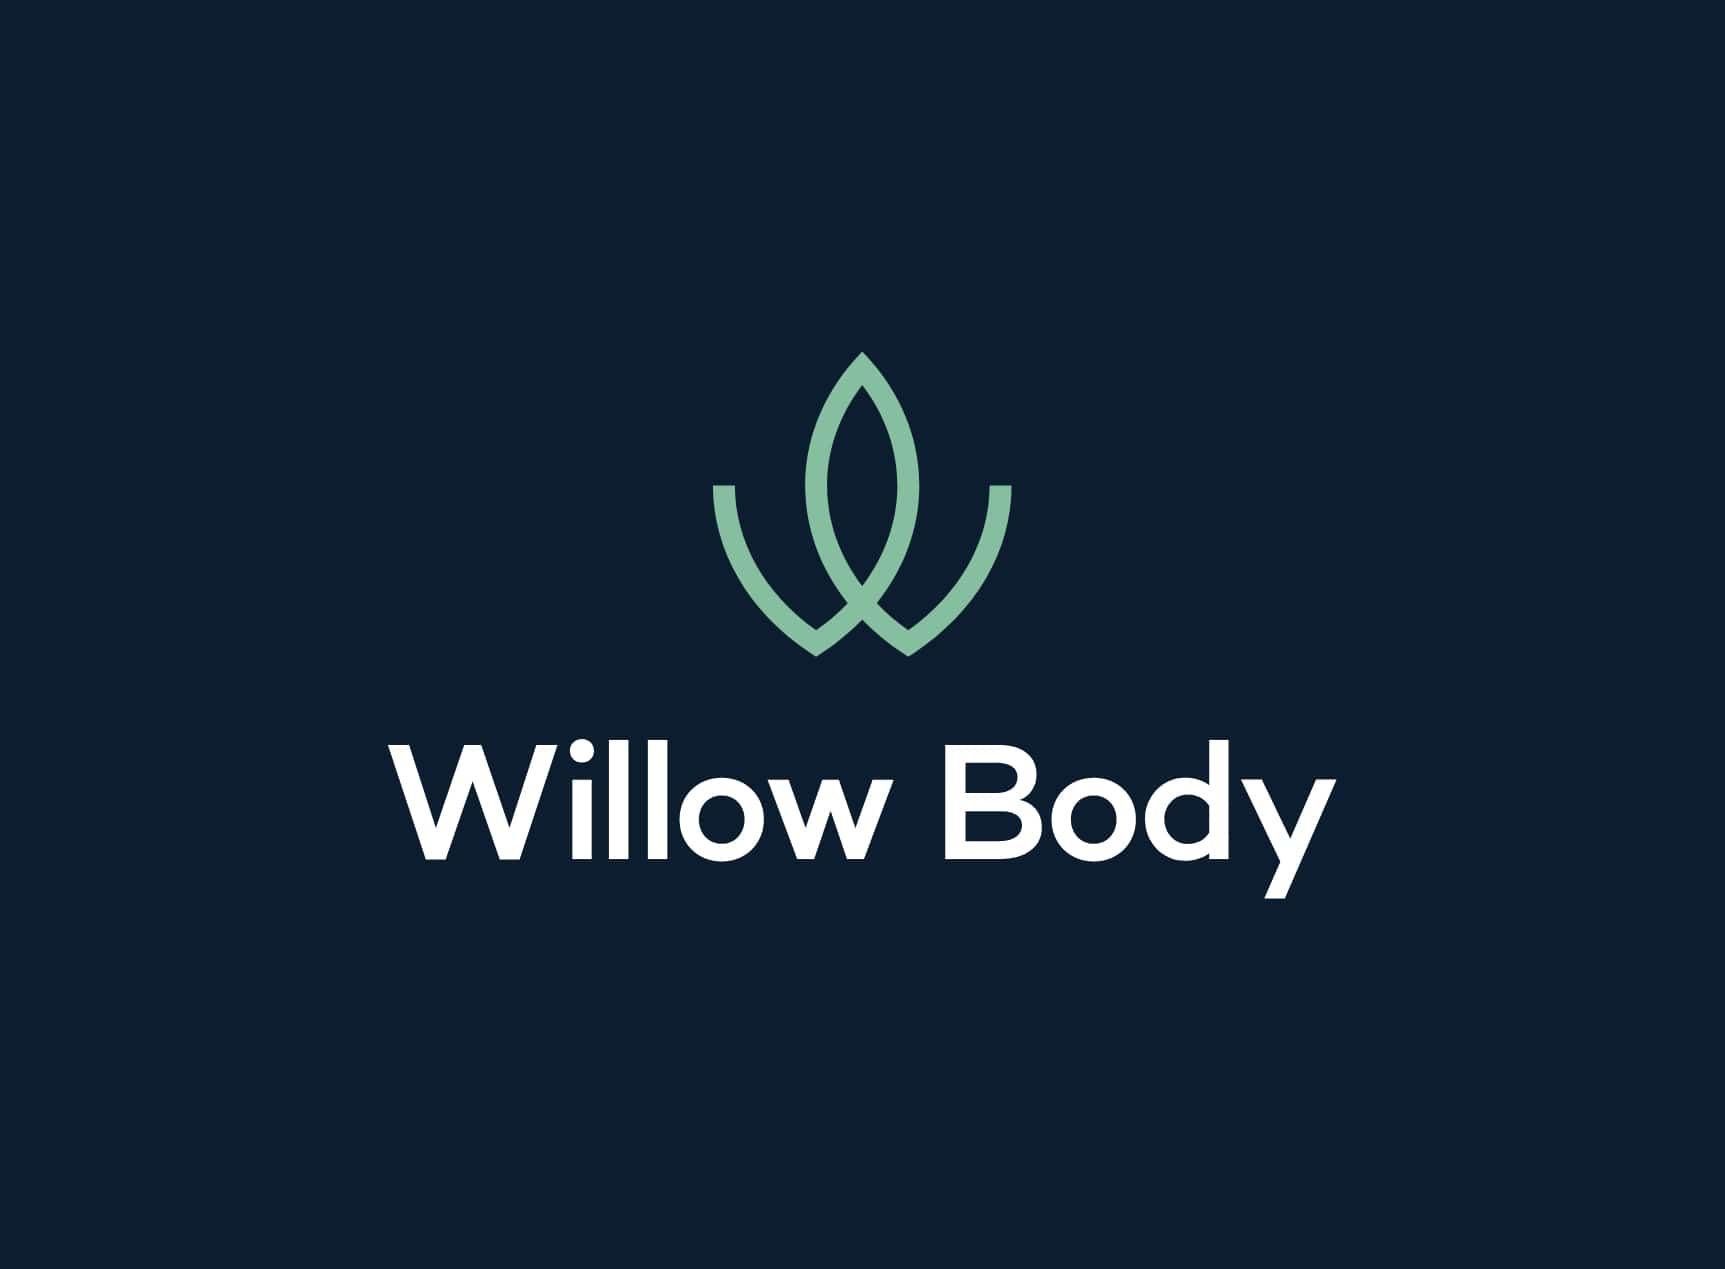 Willow Body logo by TAC